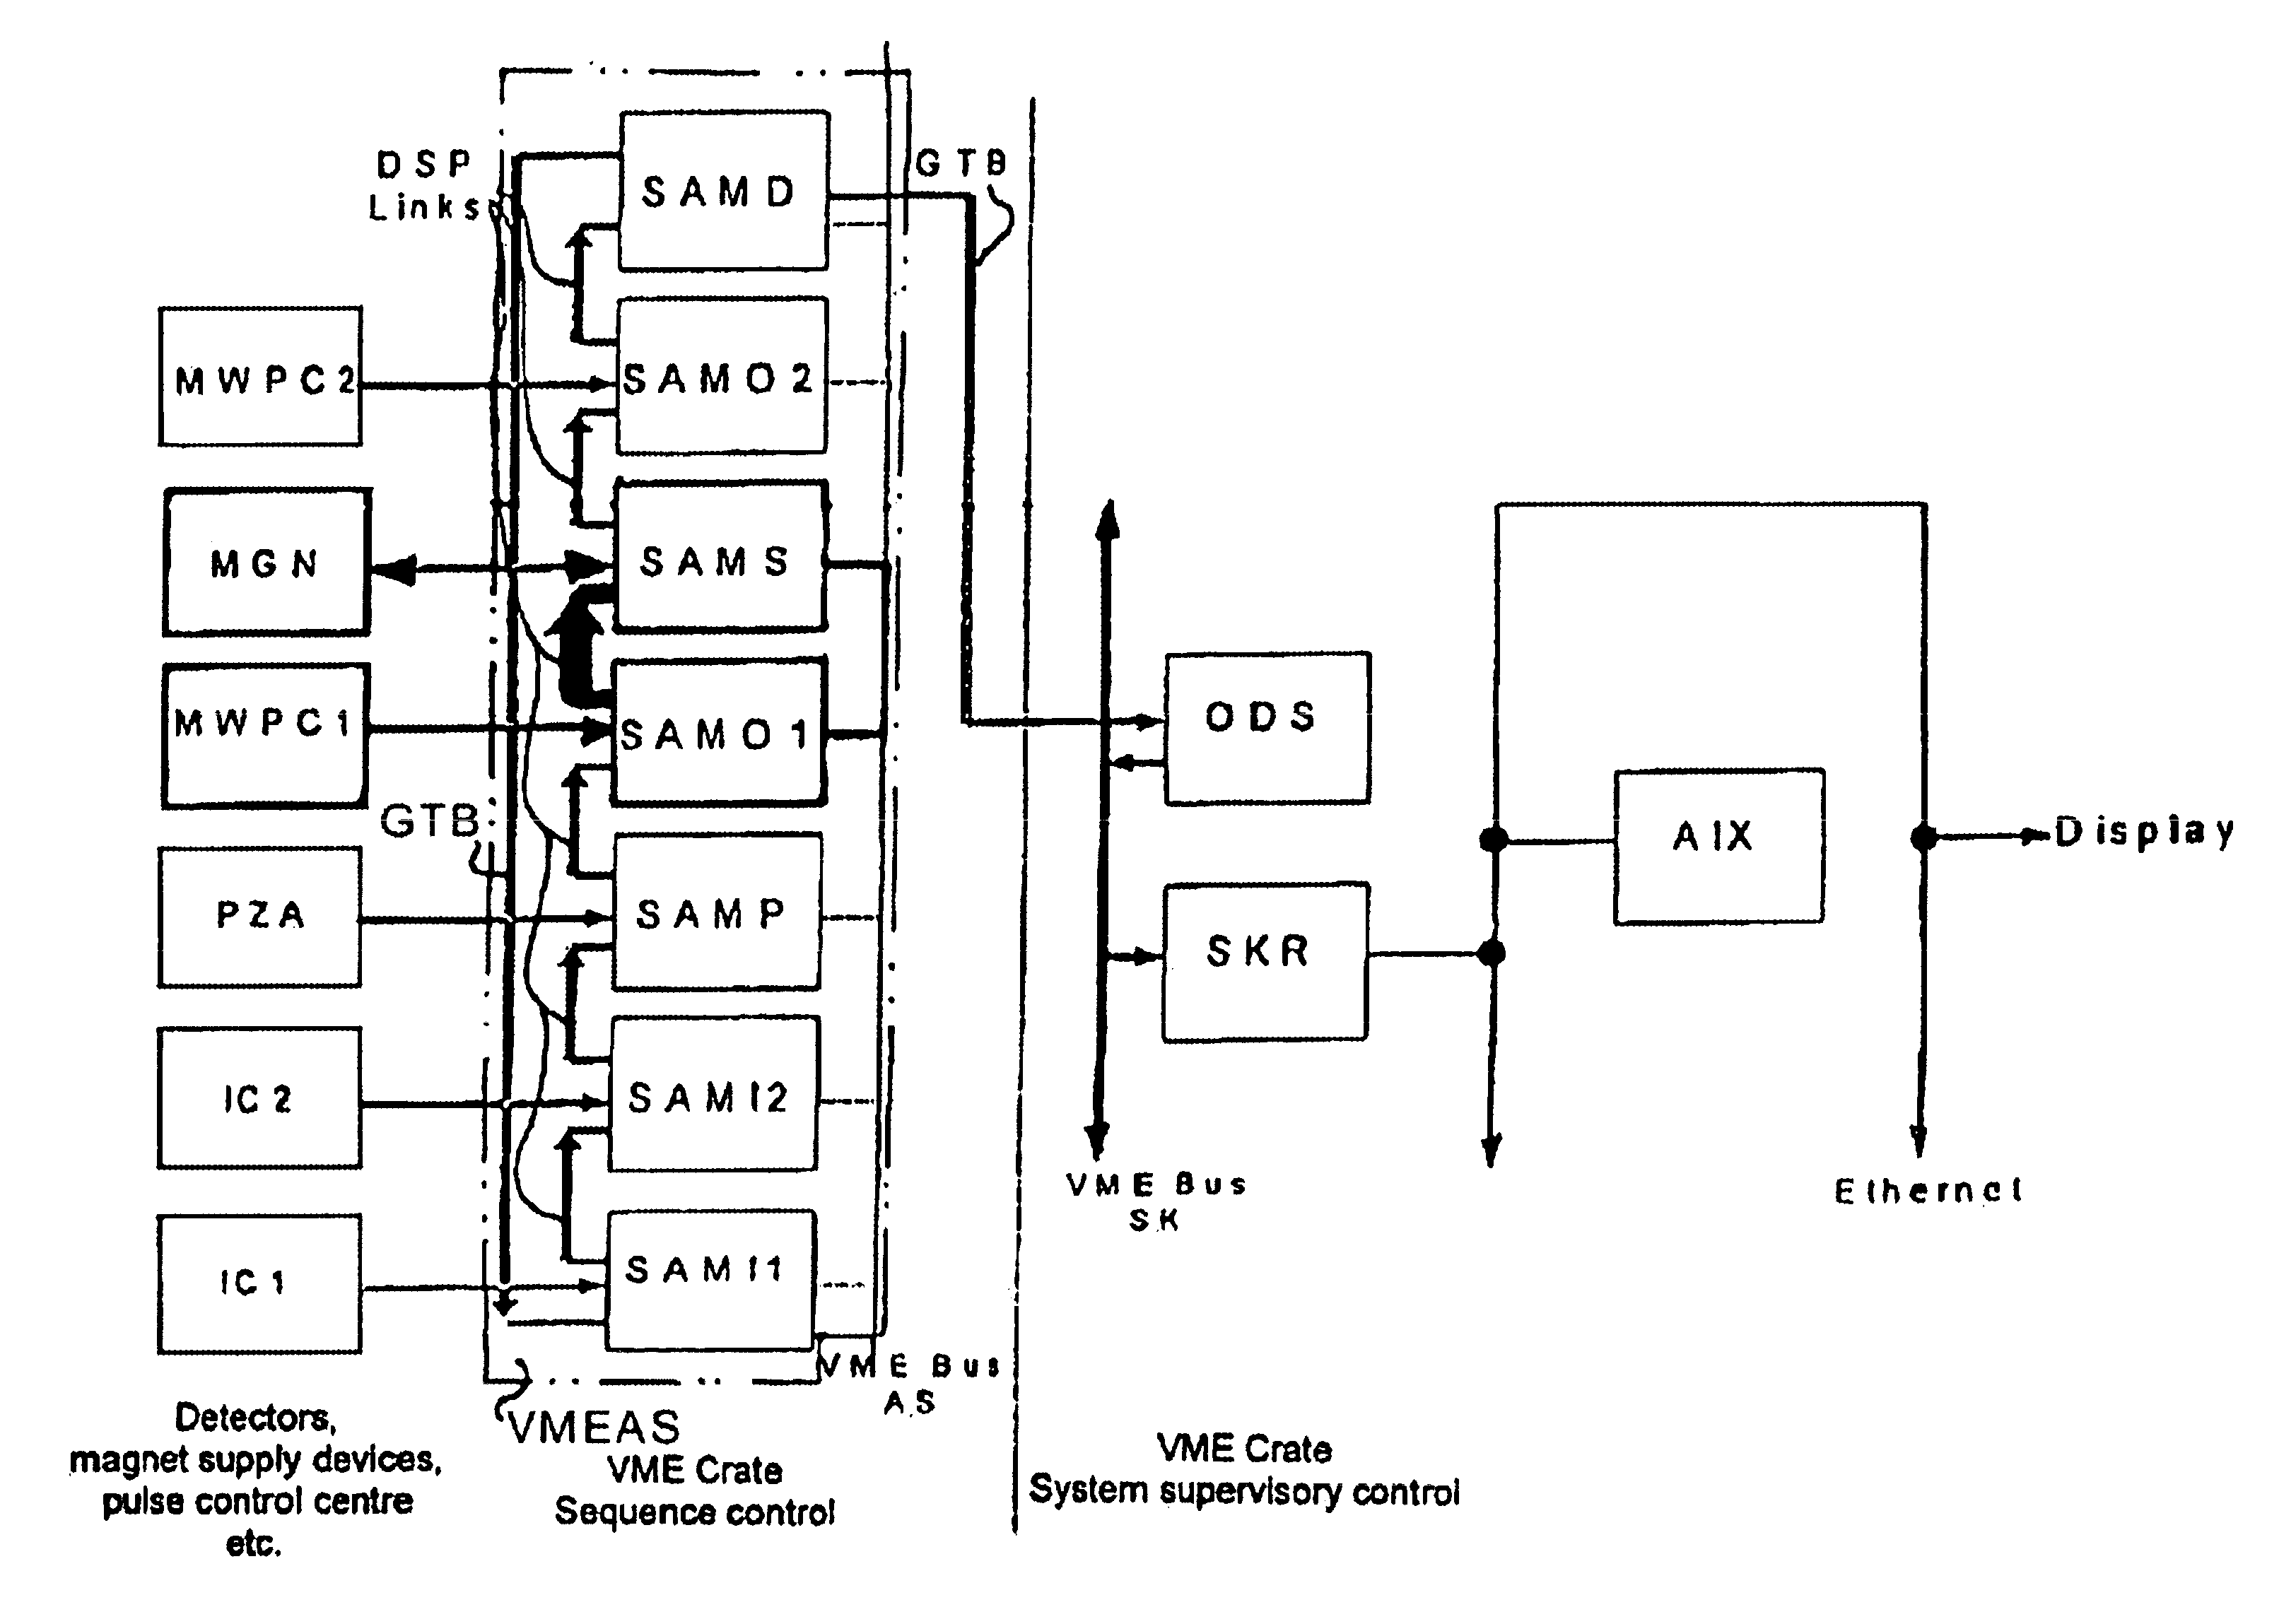 Ion Beam Current Measurement Circuit Smart Wiring Diagrams Ac Patent Us6677597 Device And Method For Controlling A Little Heat